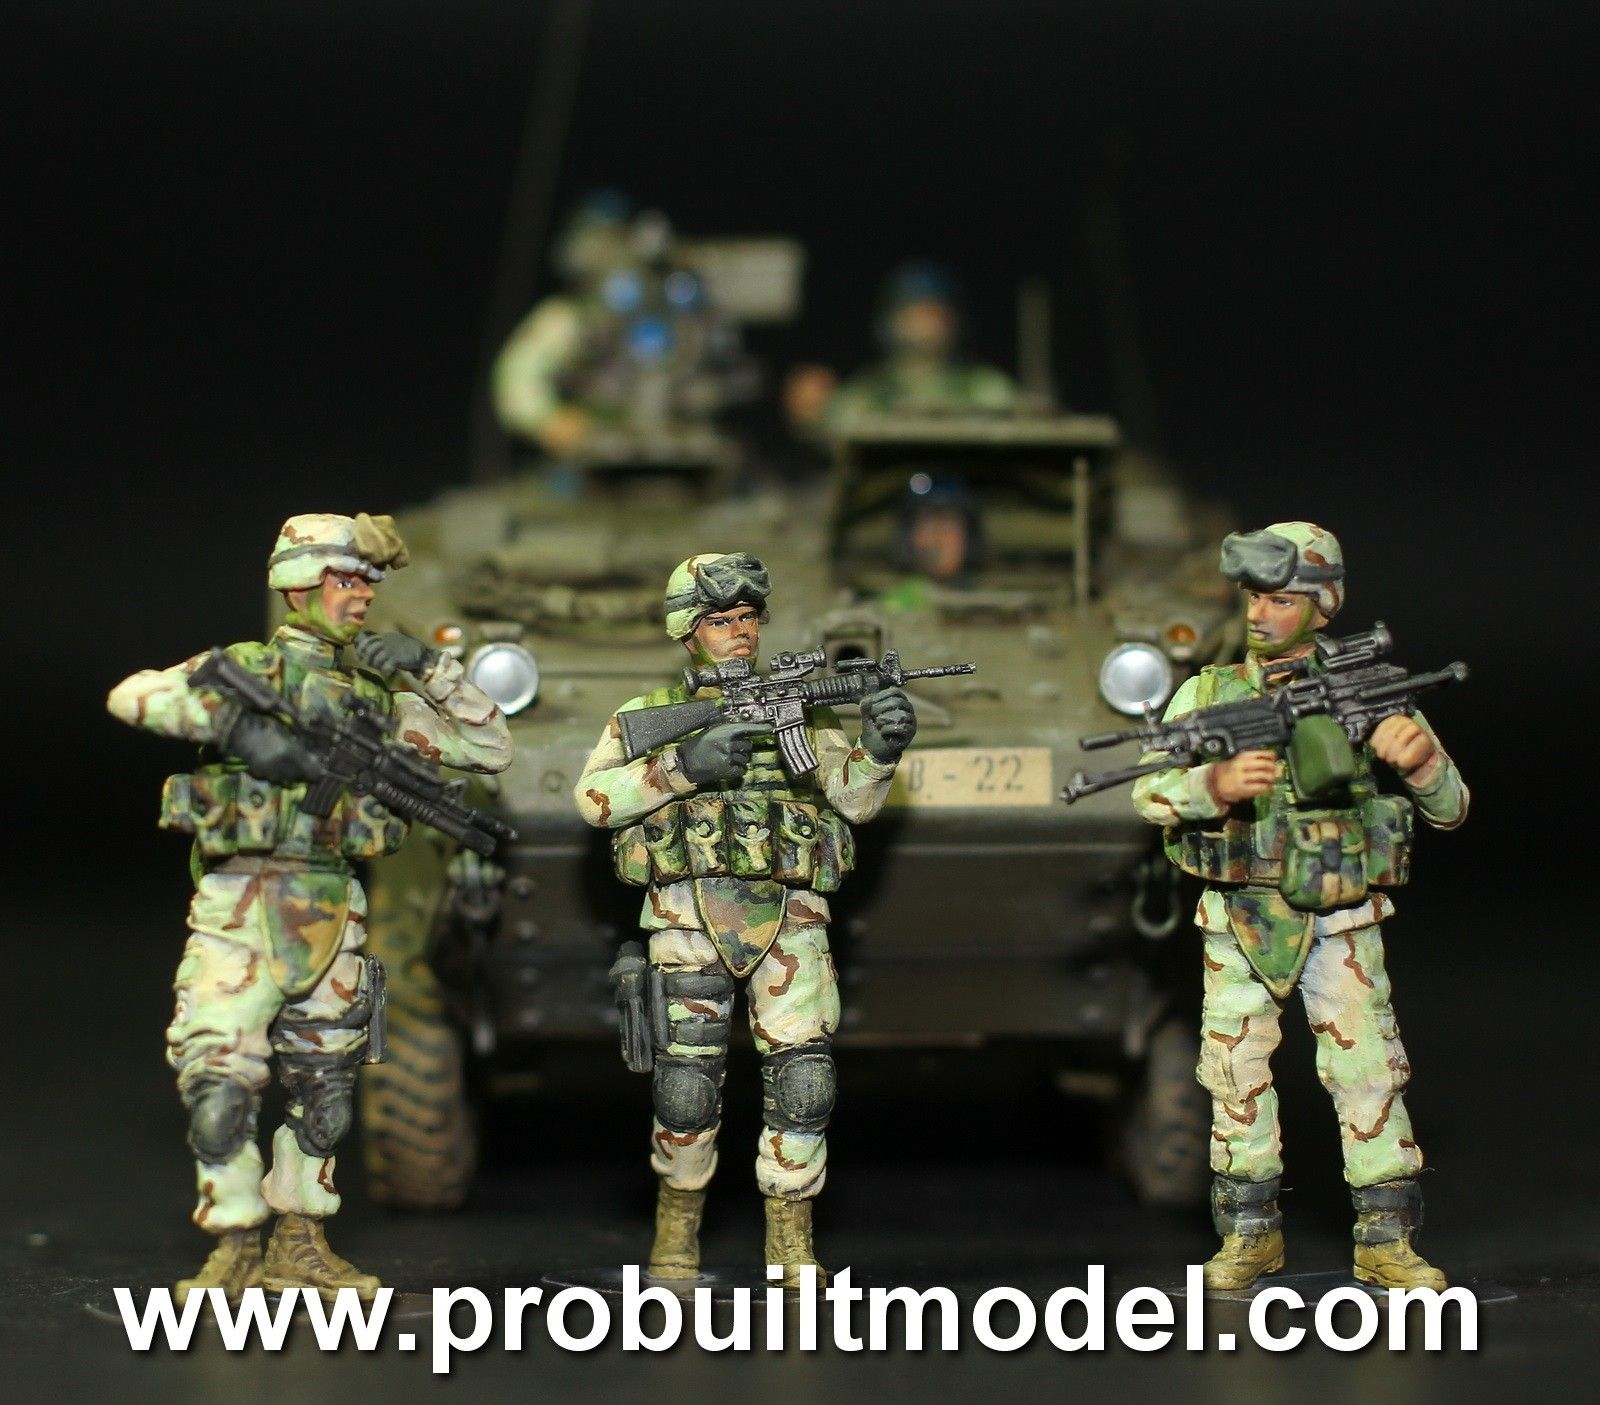 Modern US Army Armor Crewman And Infantry In Iraq And